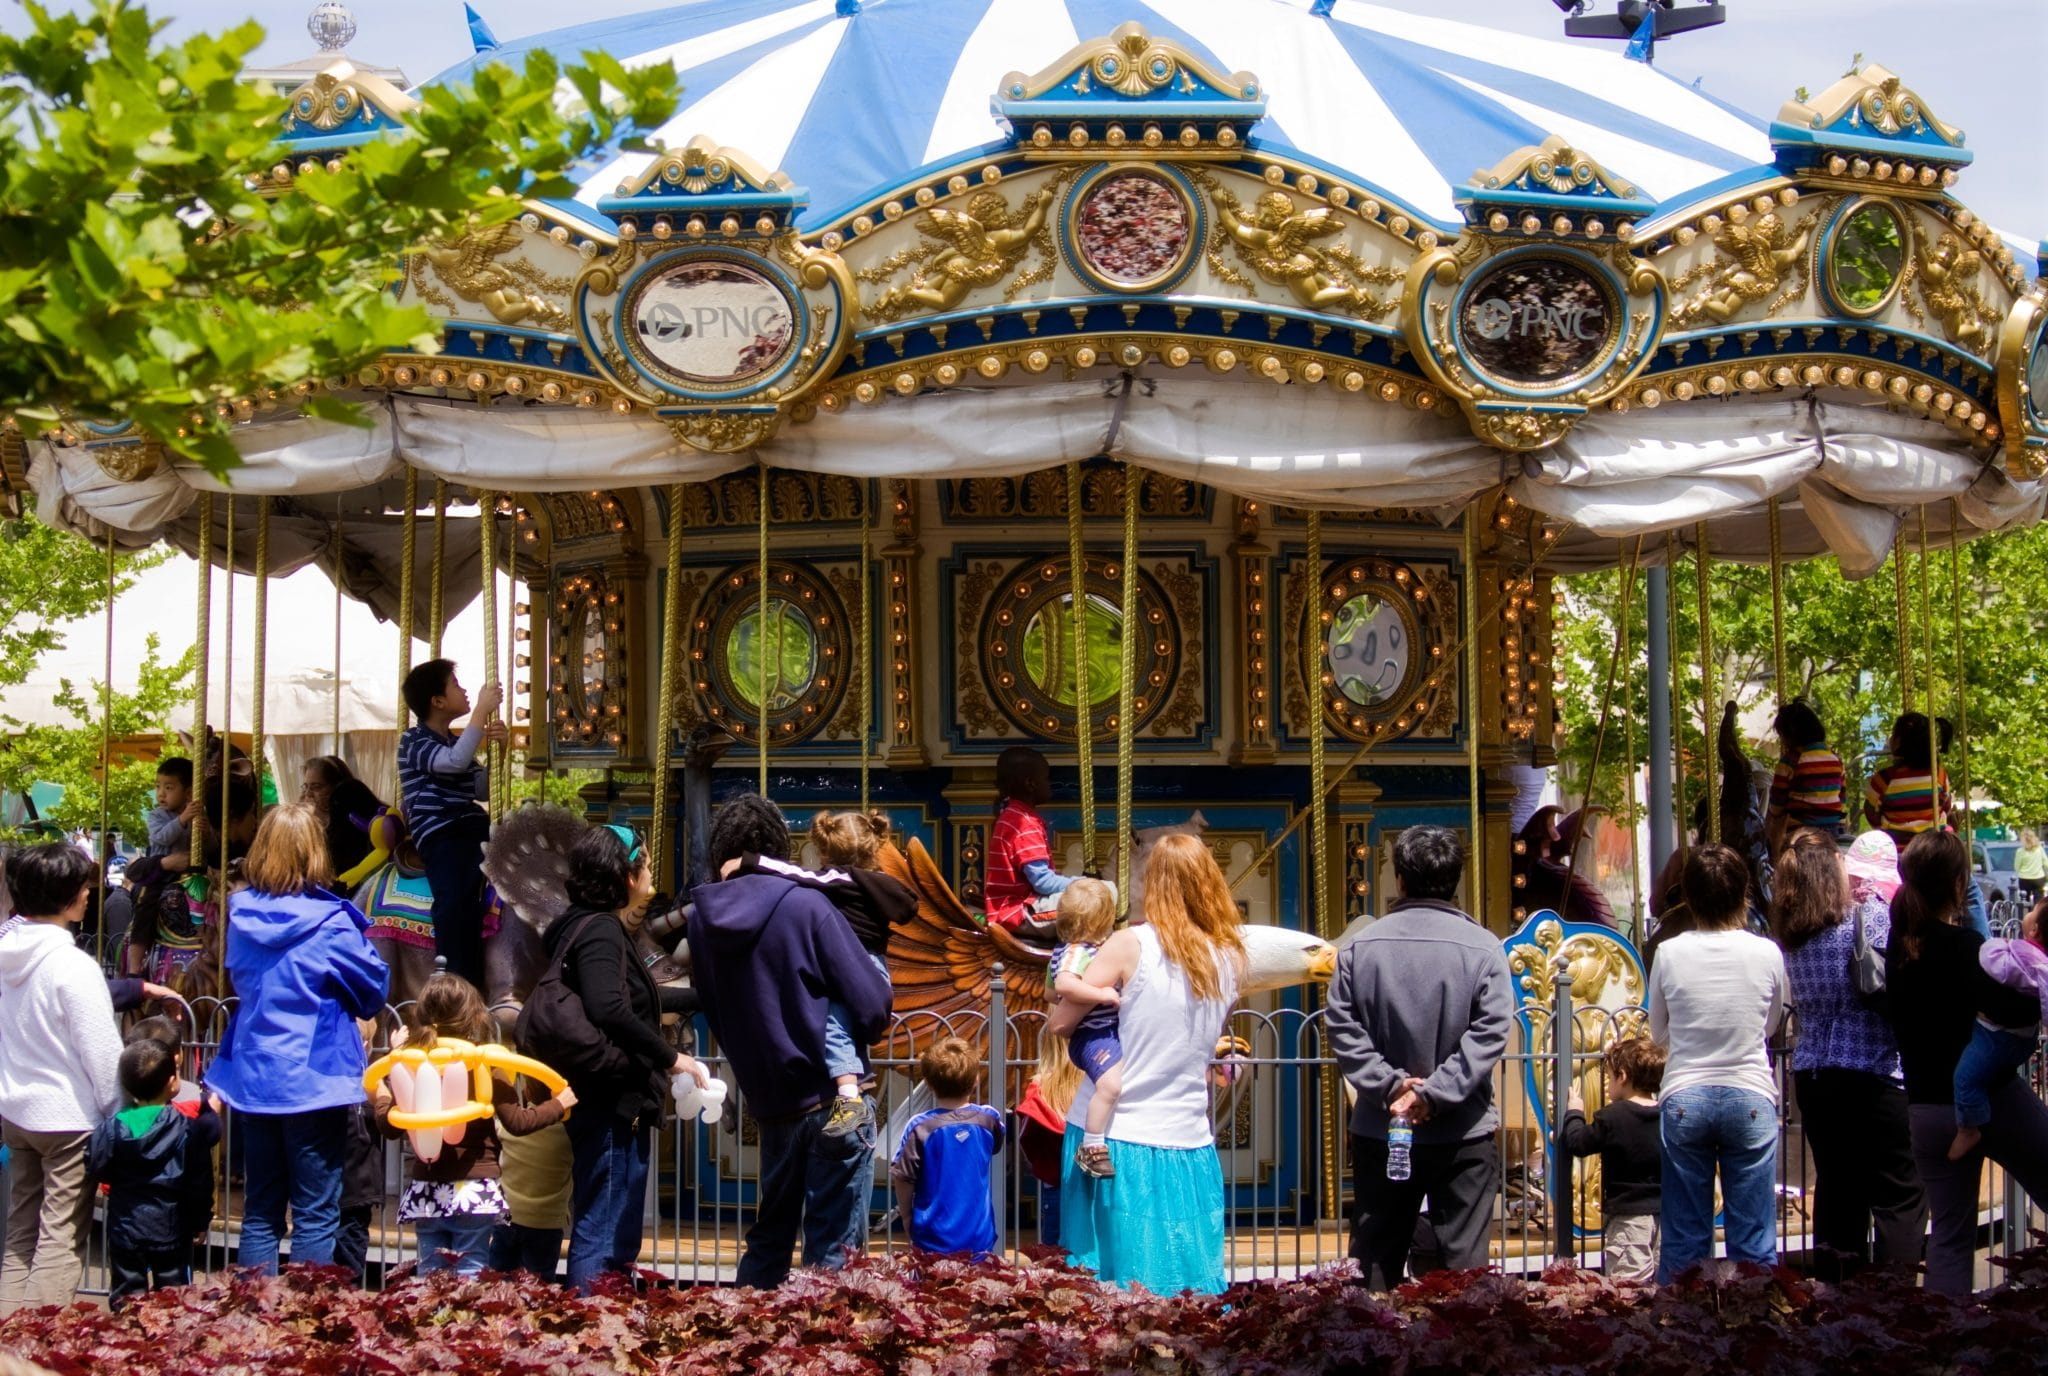 People are waiting for the carousel at Schenley Plaza